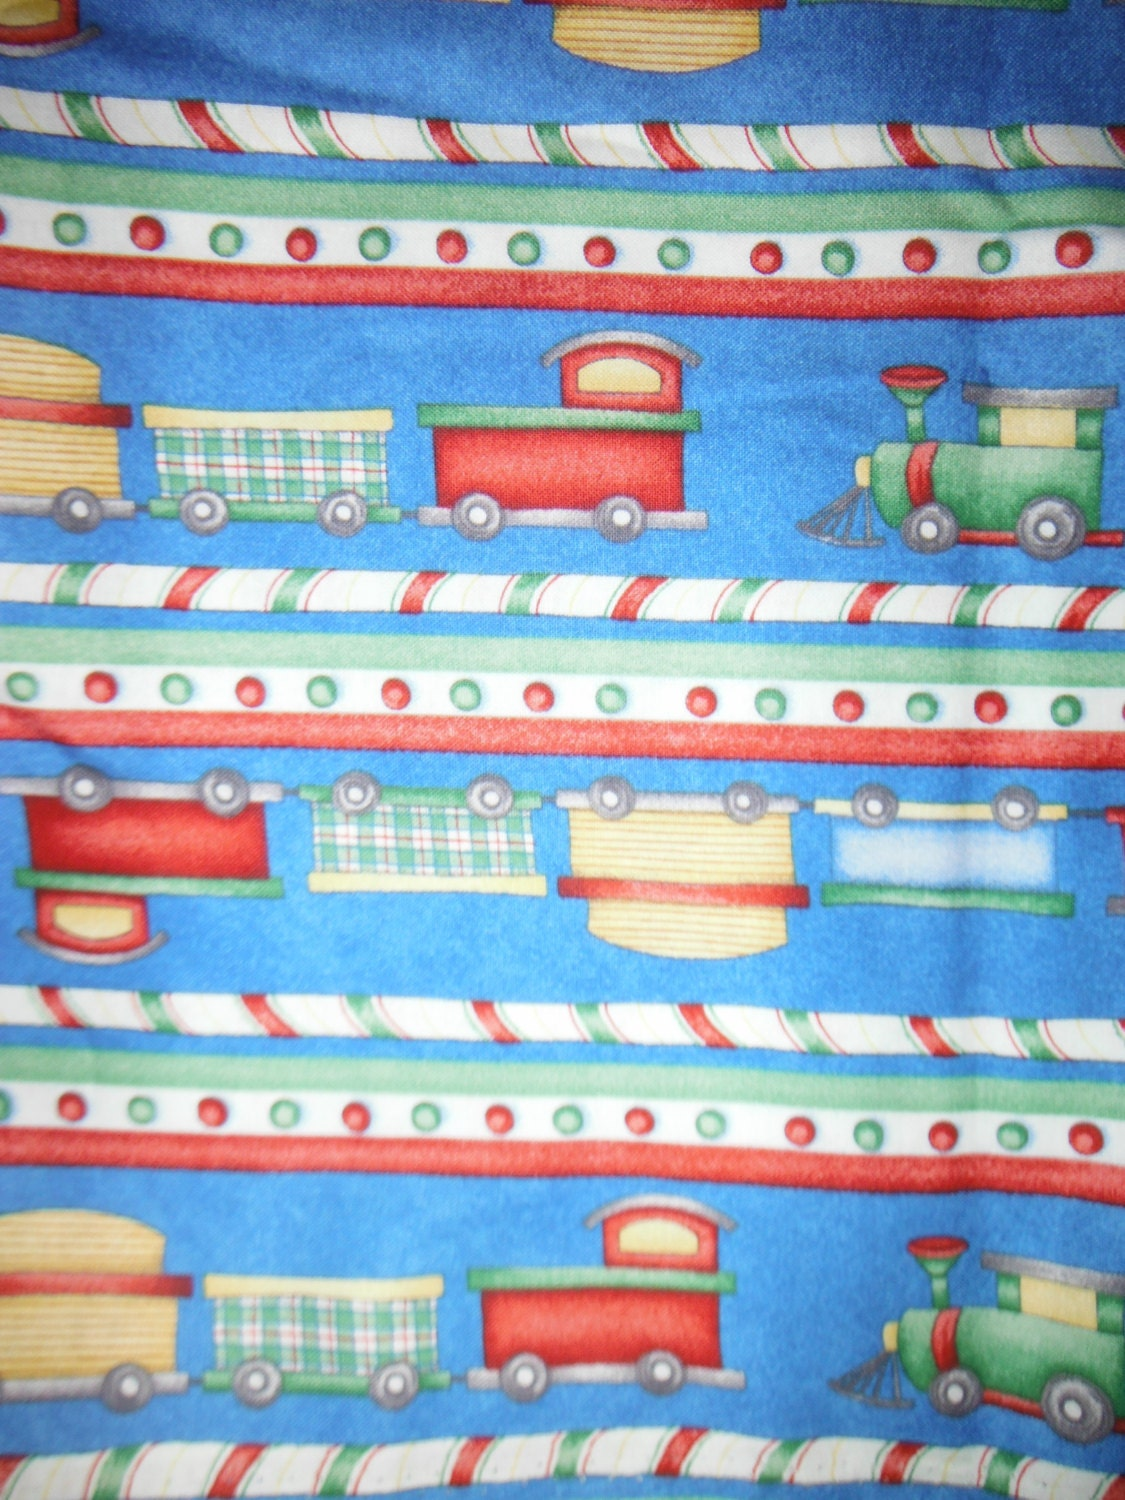 Fun train fabric hard findlast piece for Fabric with trains pattern